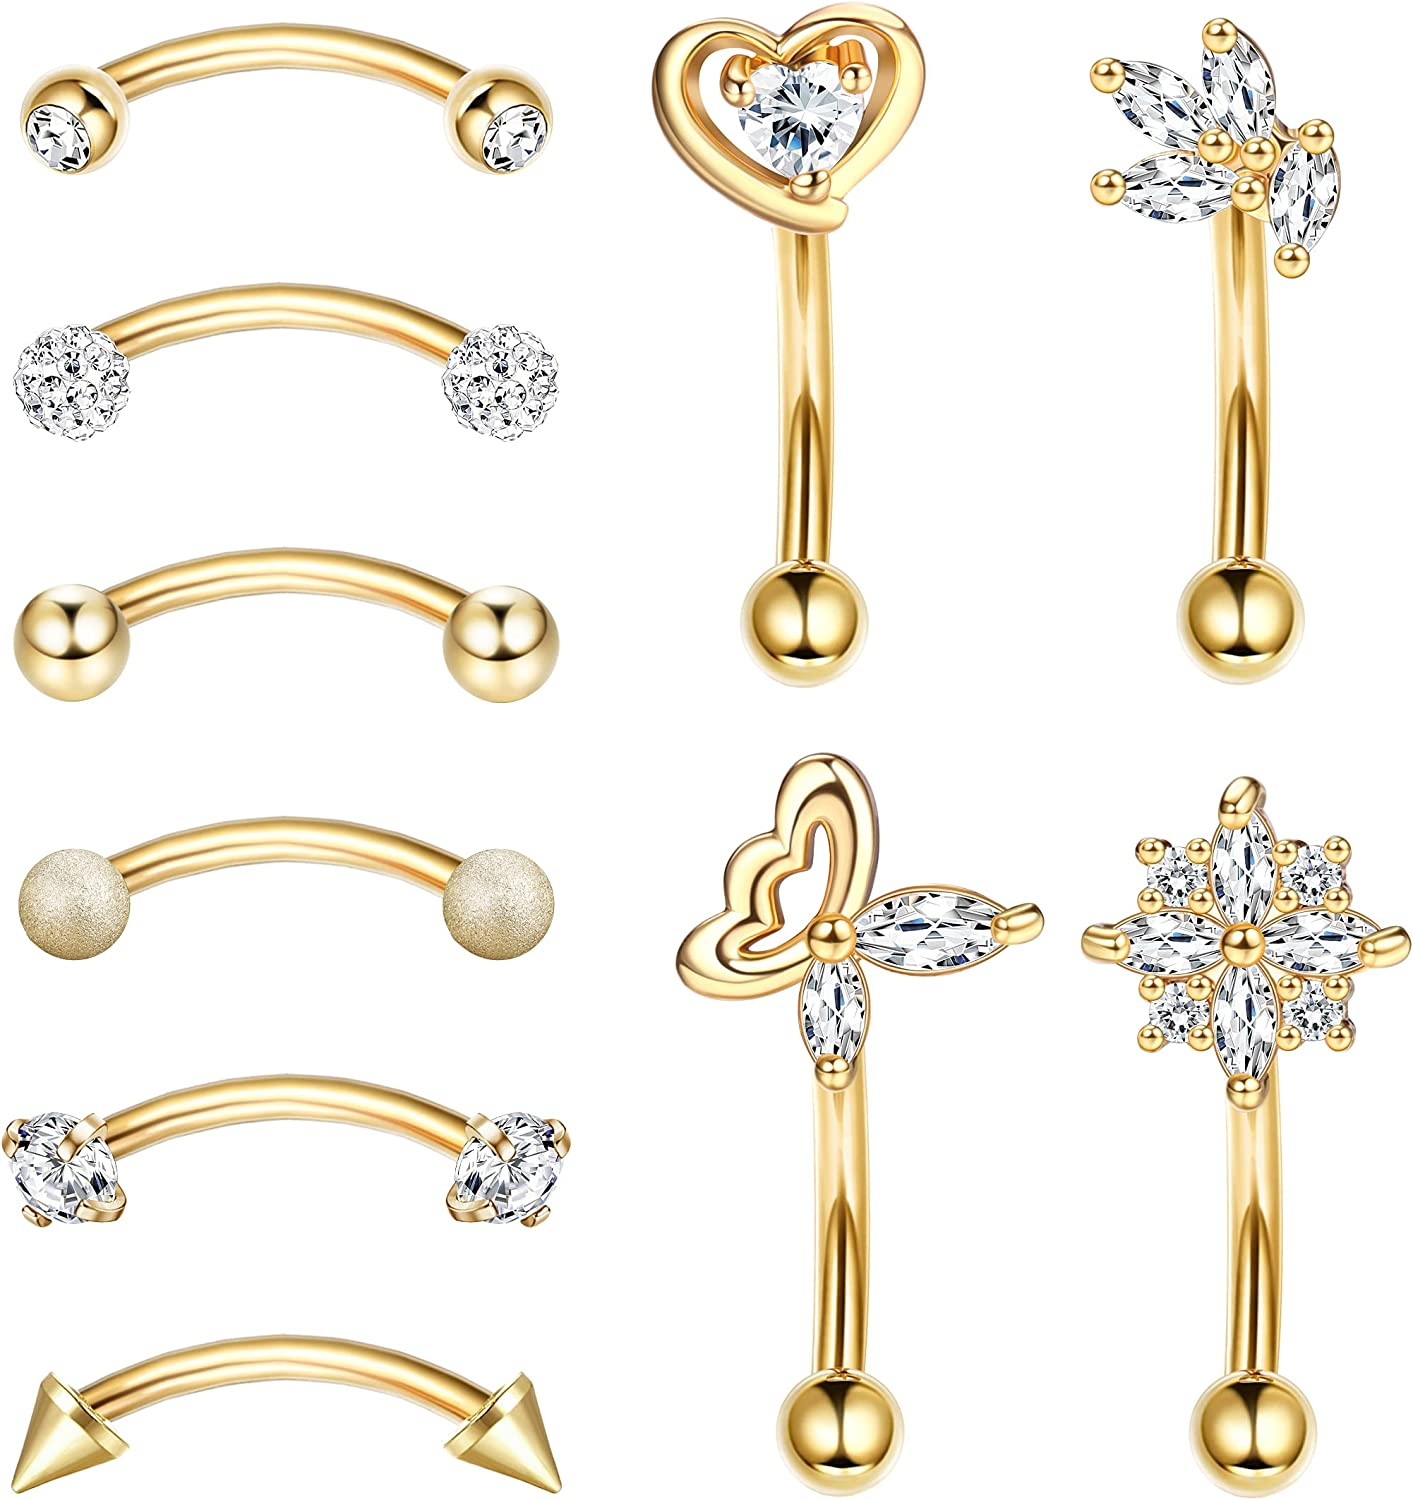 Ubjuliwa 16G Stainless Steel Daith Rook Earring Belly Lip Ring Cartilage Tragus CZ Body Piercing Curved Barbell Eyebrow Rings 8mm